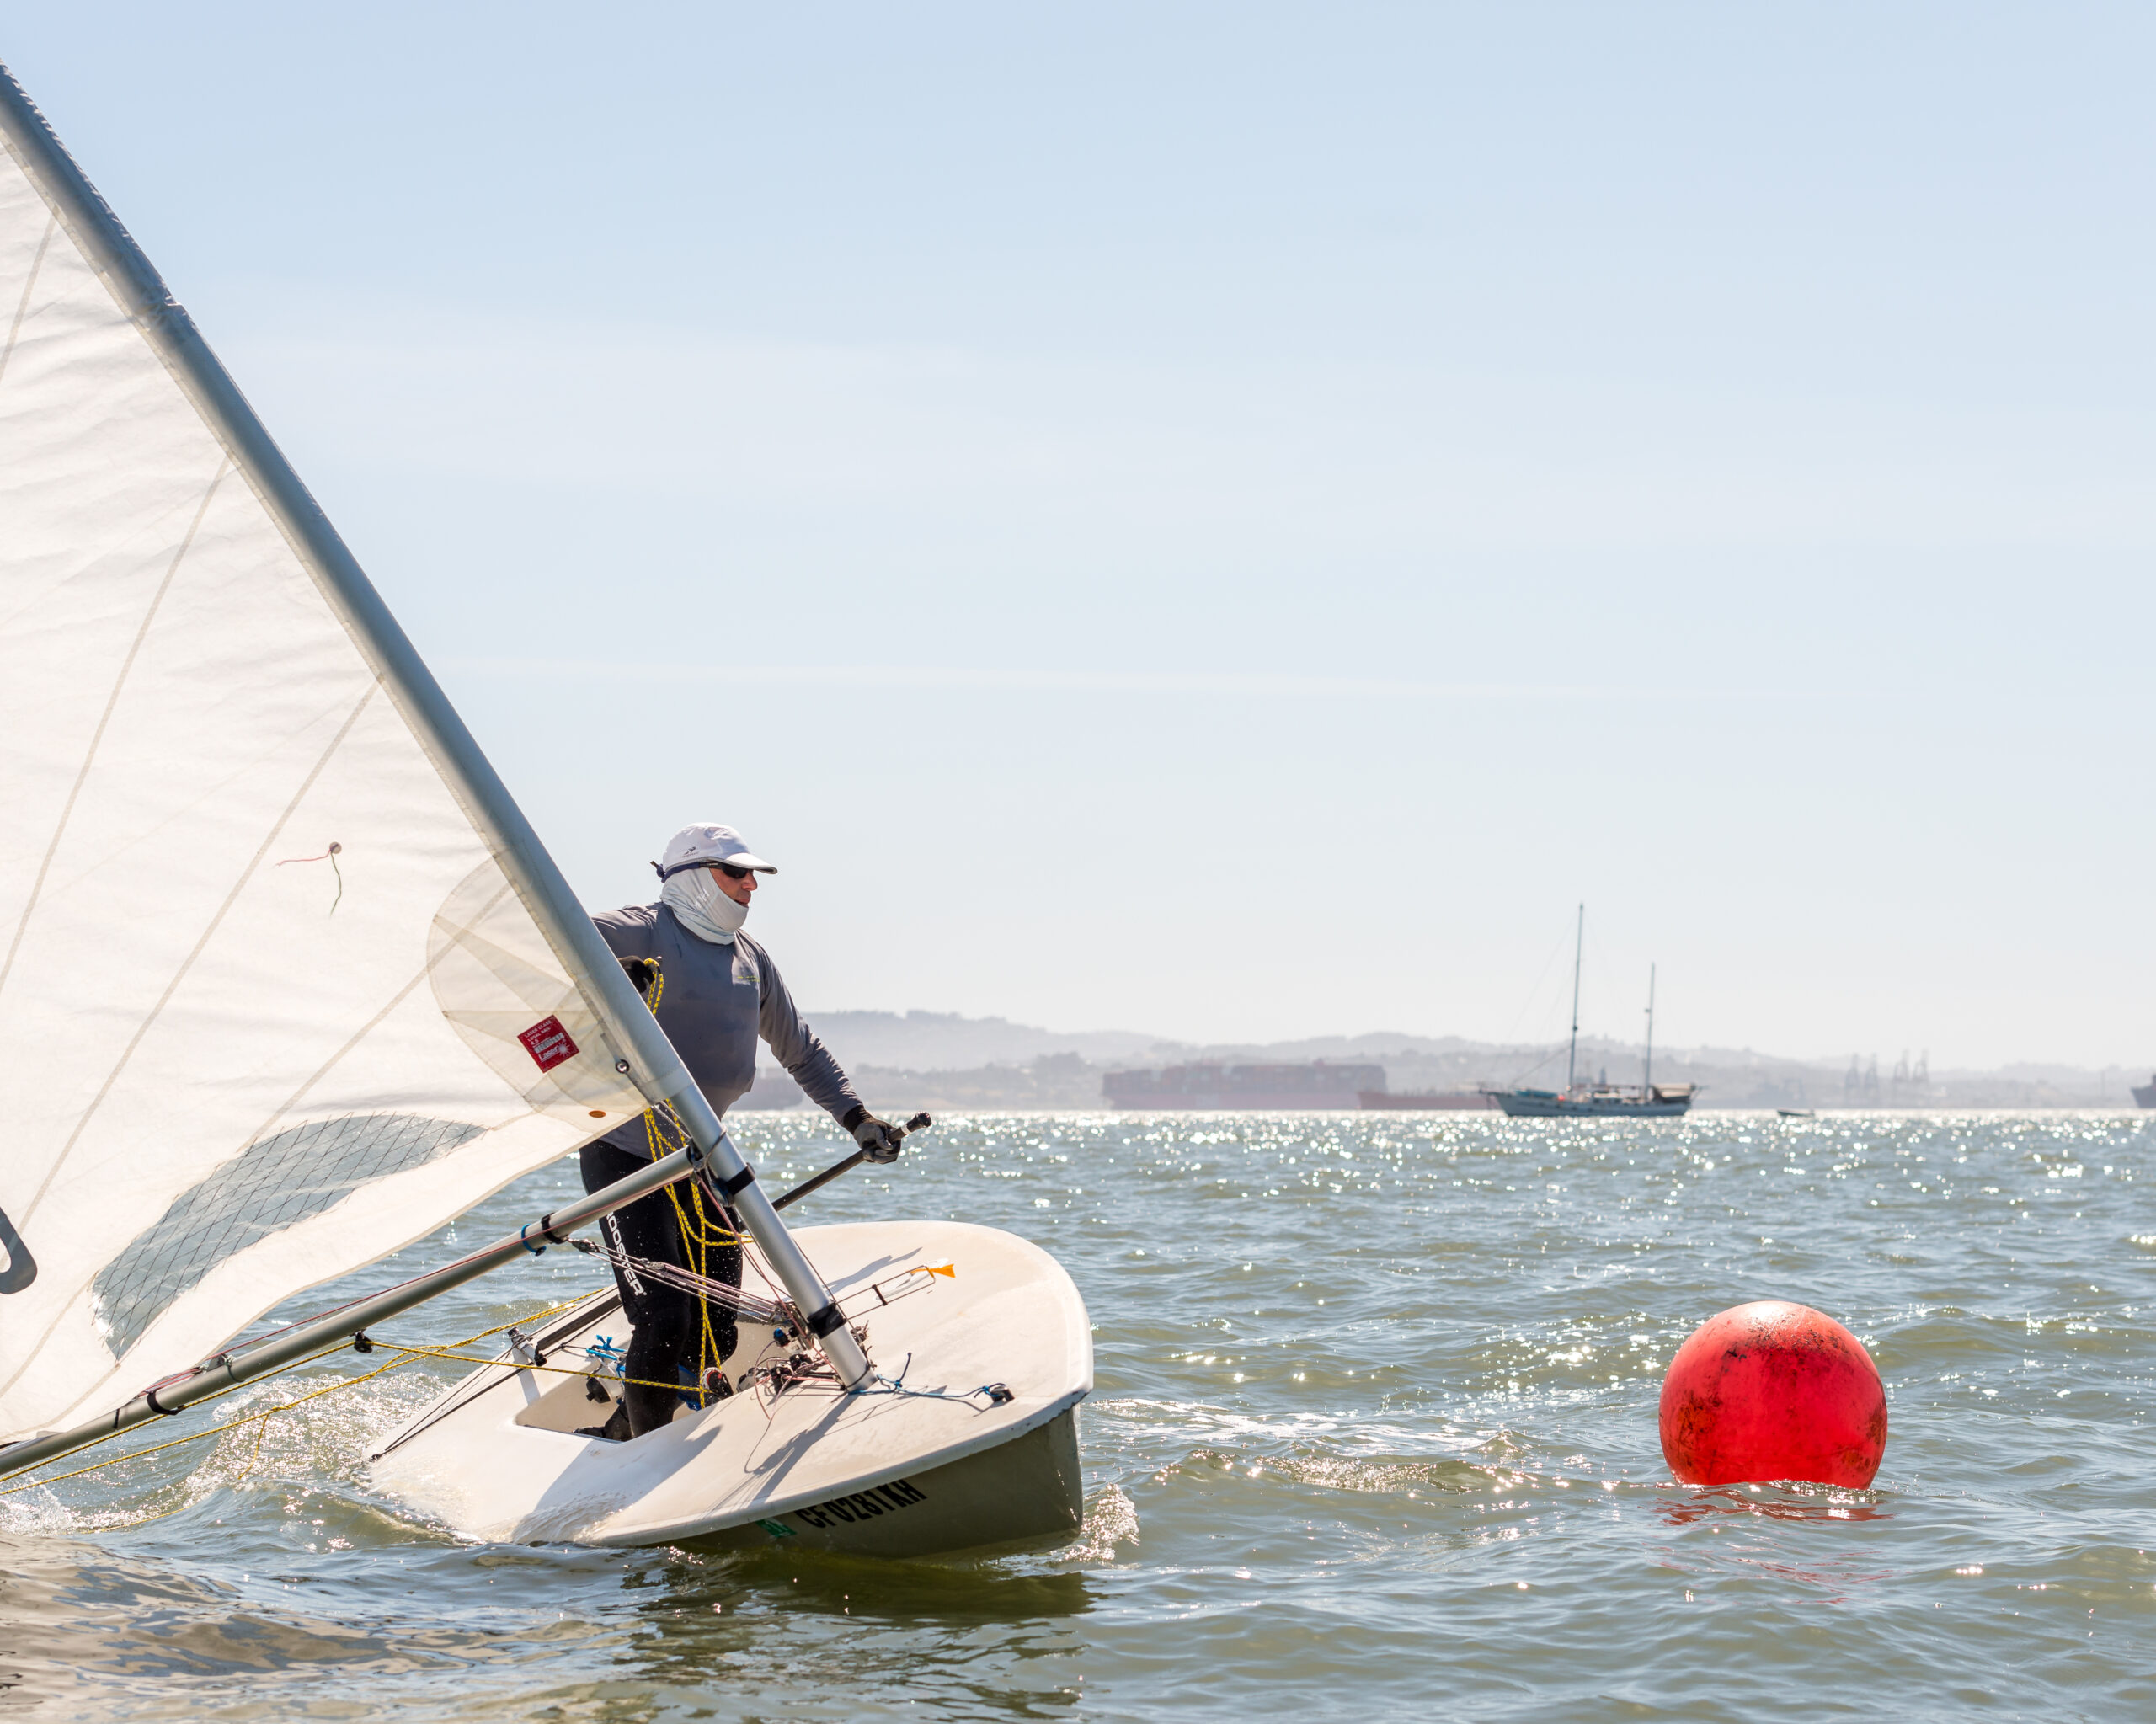 Supporting our Sailors In the International Laser Class Association (ILCA) North Americans